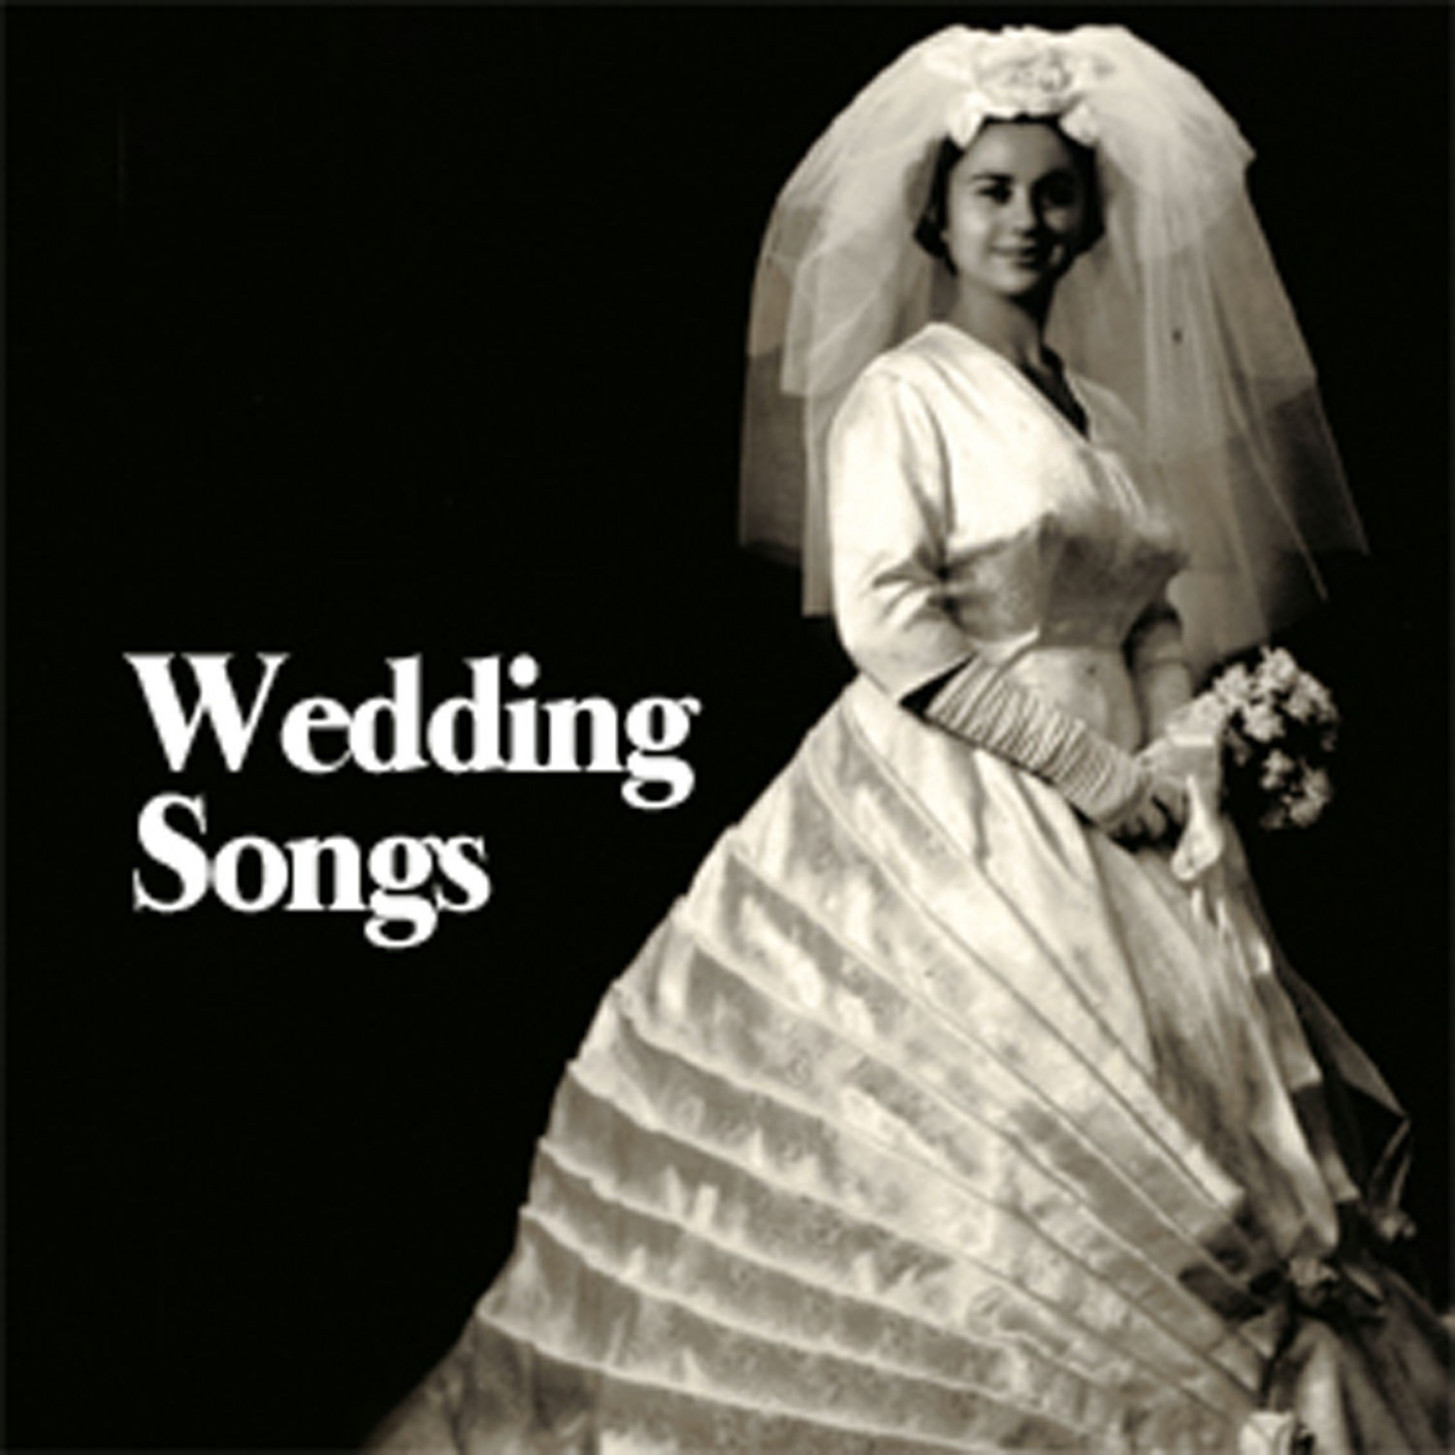 Wedding Songs Mp3 Download Free - iout.over-blog.com